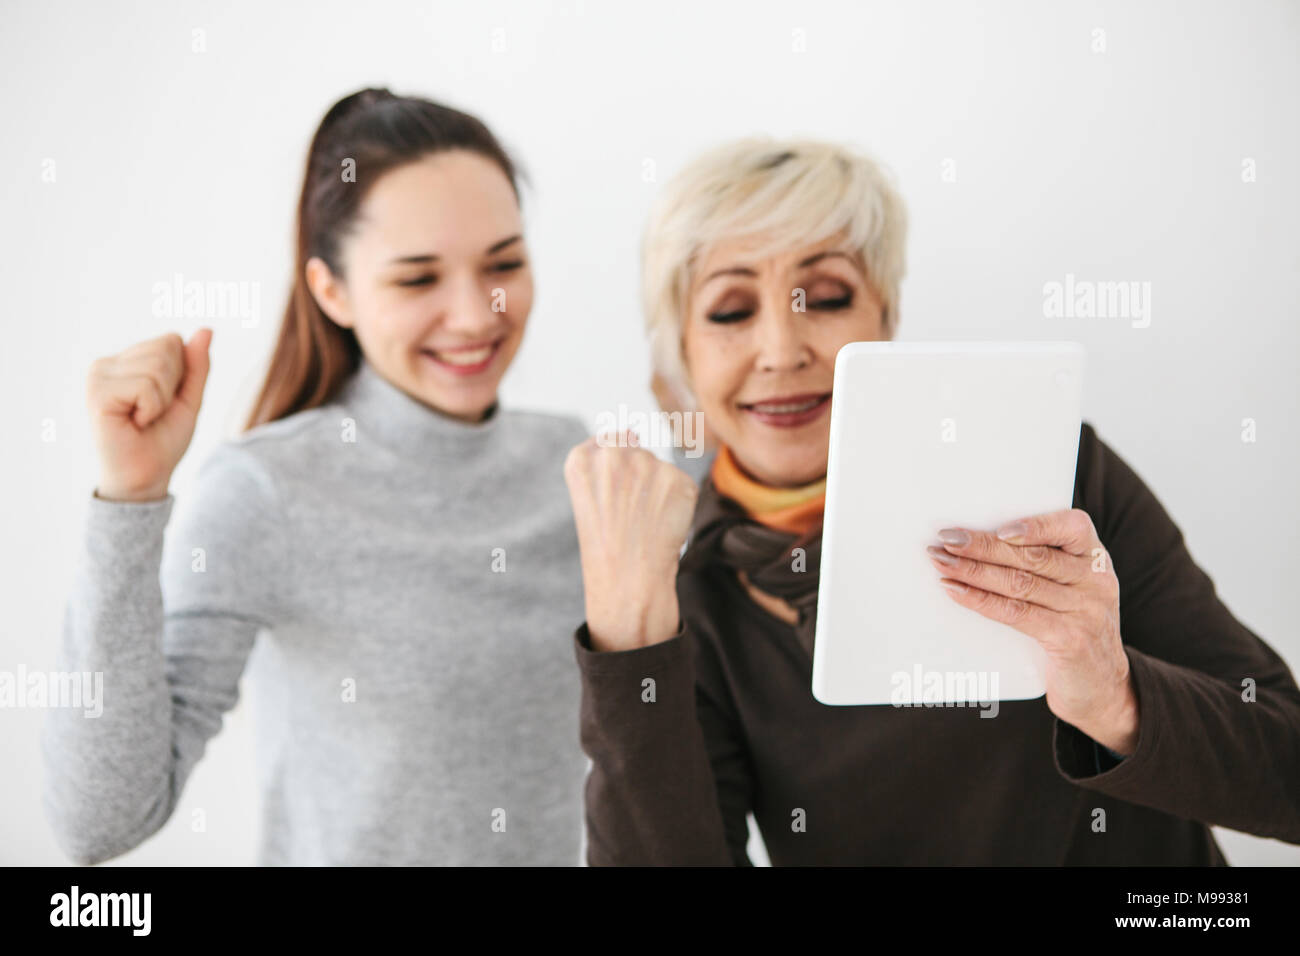 A young girl and an elderly woman look at something interesting on the tablet and are happy. Communication, joint pastime, positive emotions between people. - Stock Image